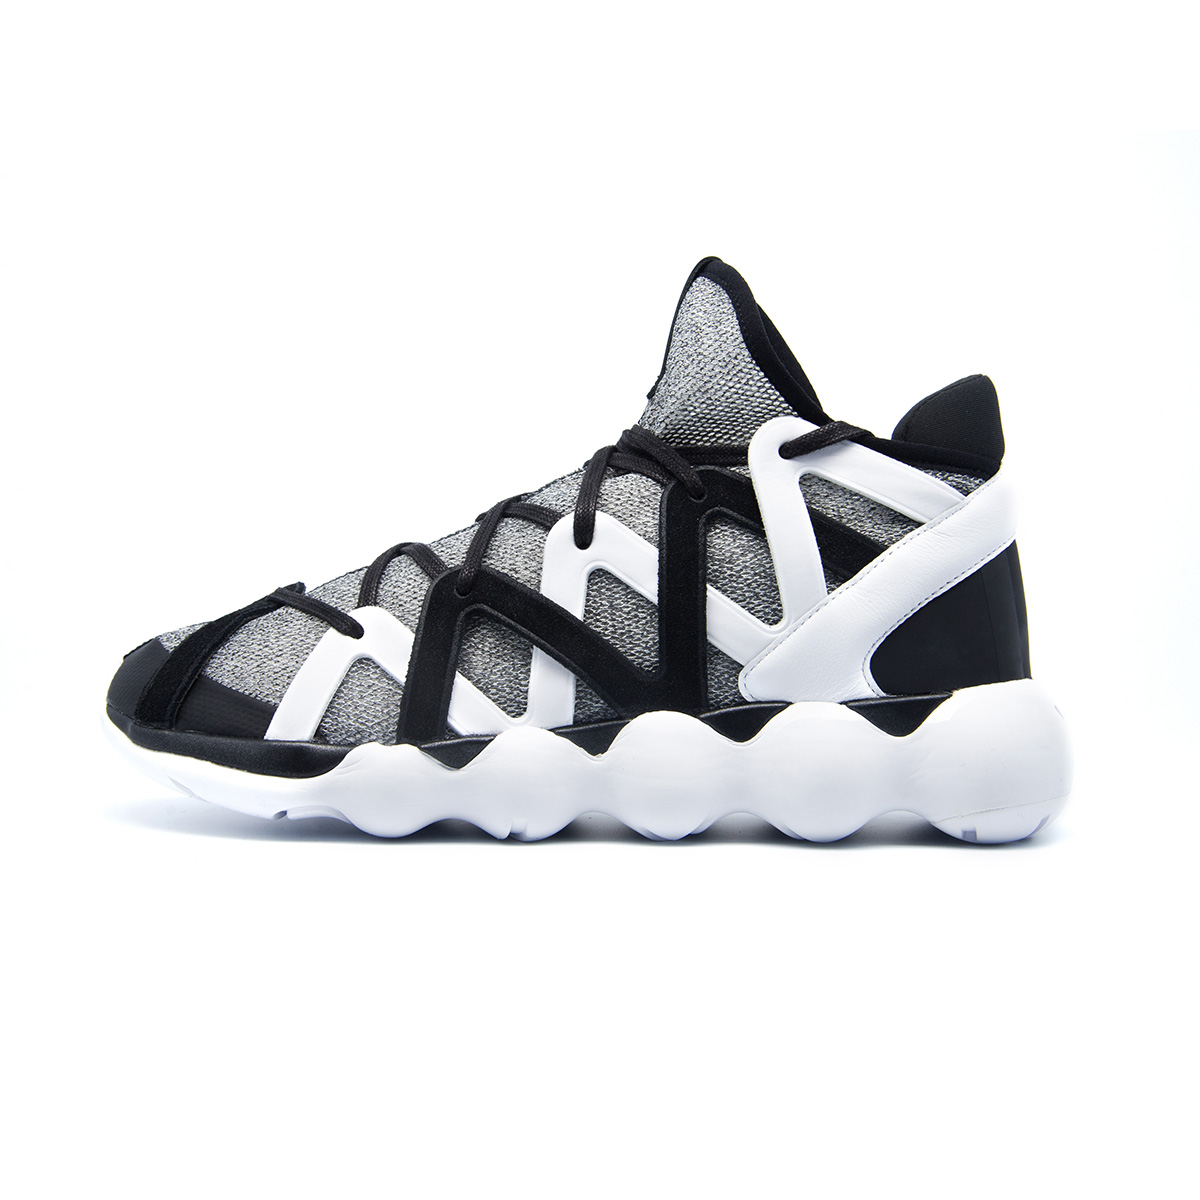 4d989da5be0c0 Buy 2016 mens casual shoes y-3 y3 high kyujo AQ5546 in Cheap Price on  Alibaba.com